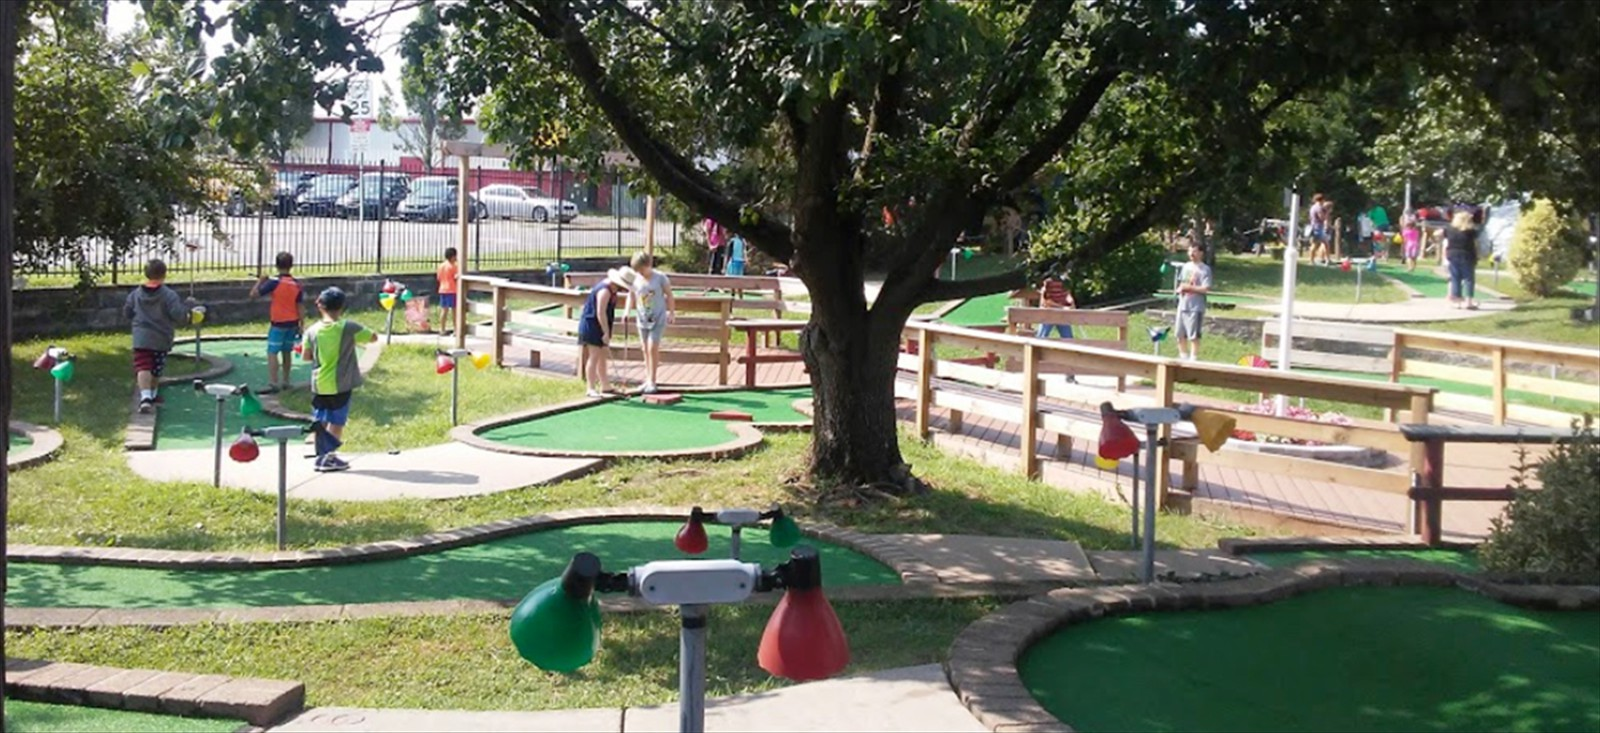 Miniature Golf Affordable Family Fun Manassas Va The Magic Putting Place Kids Parties Recreational Golf Course Parties Lighted Night Time Play Practice Putting Skills Mathis Avenue Old Town Manassas Virginia